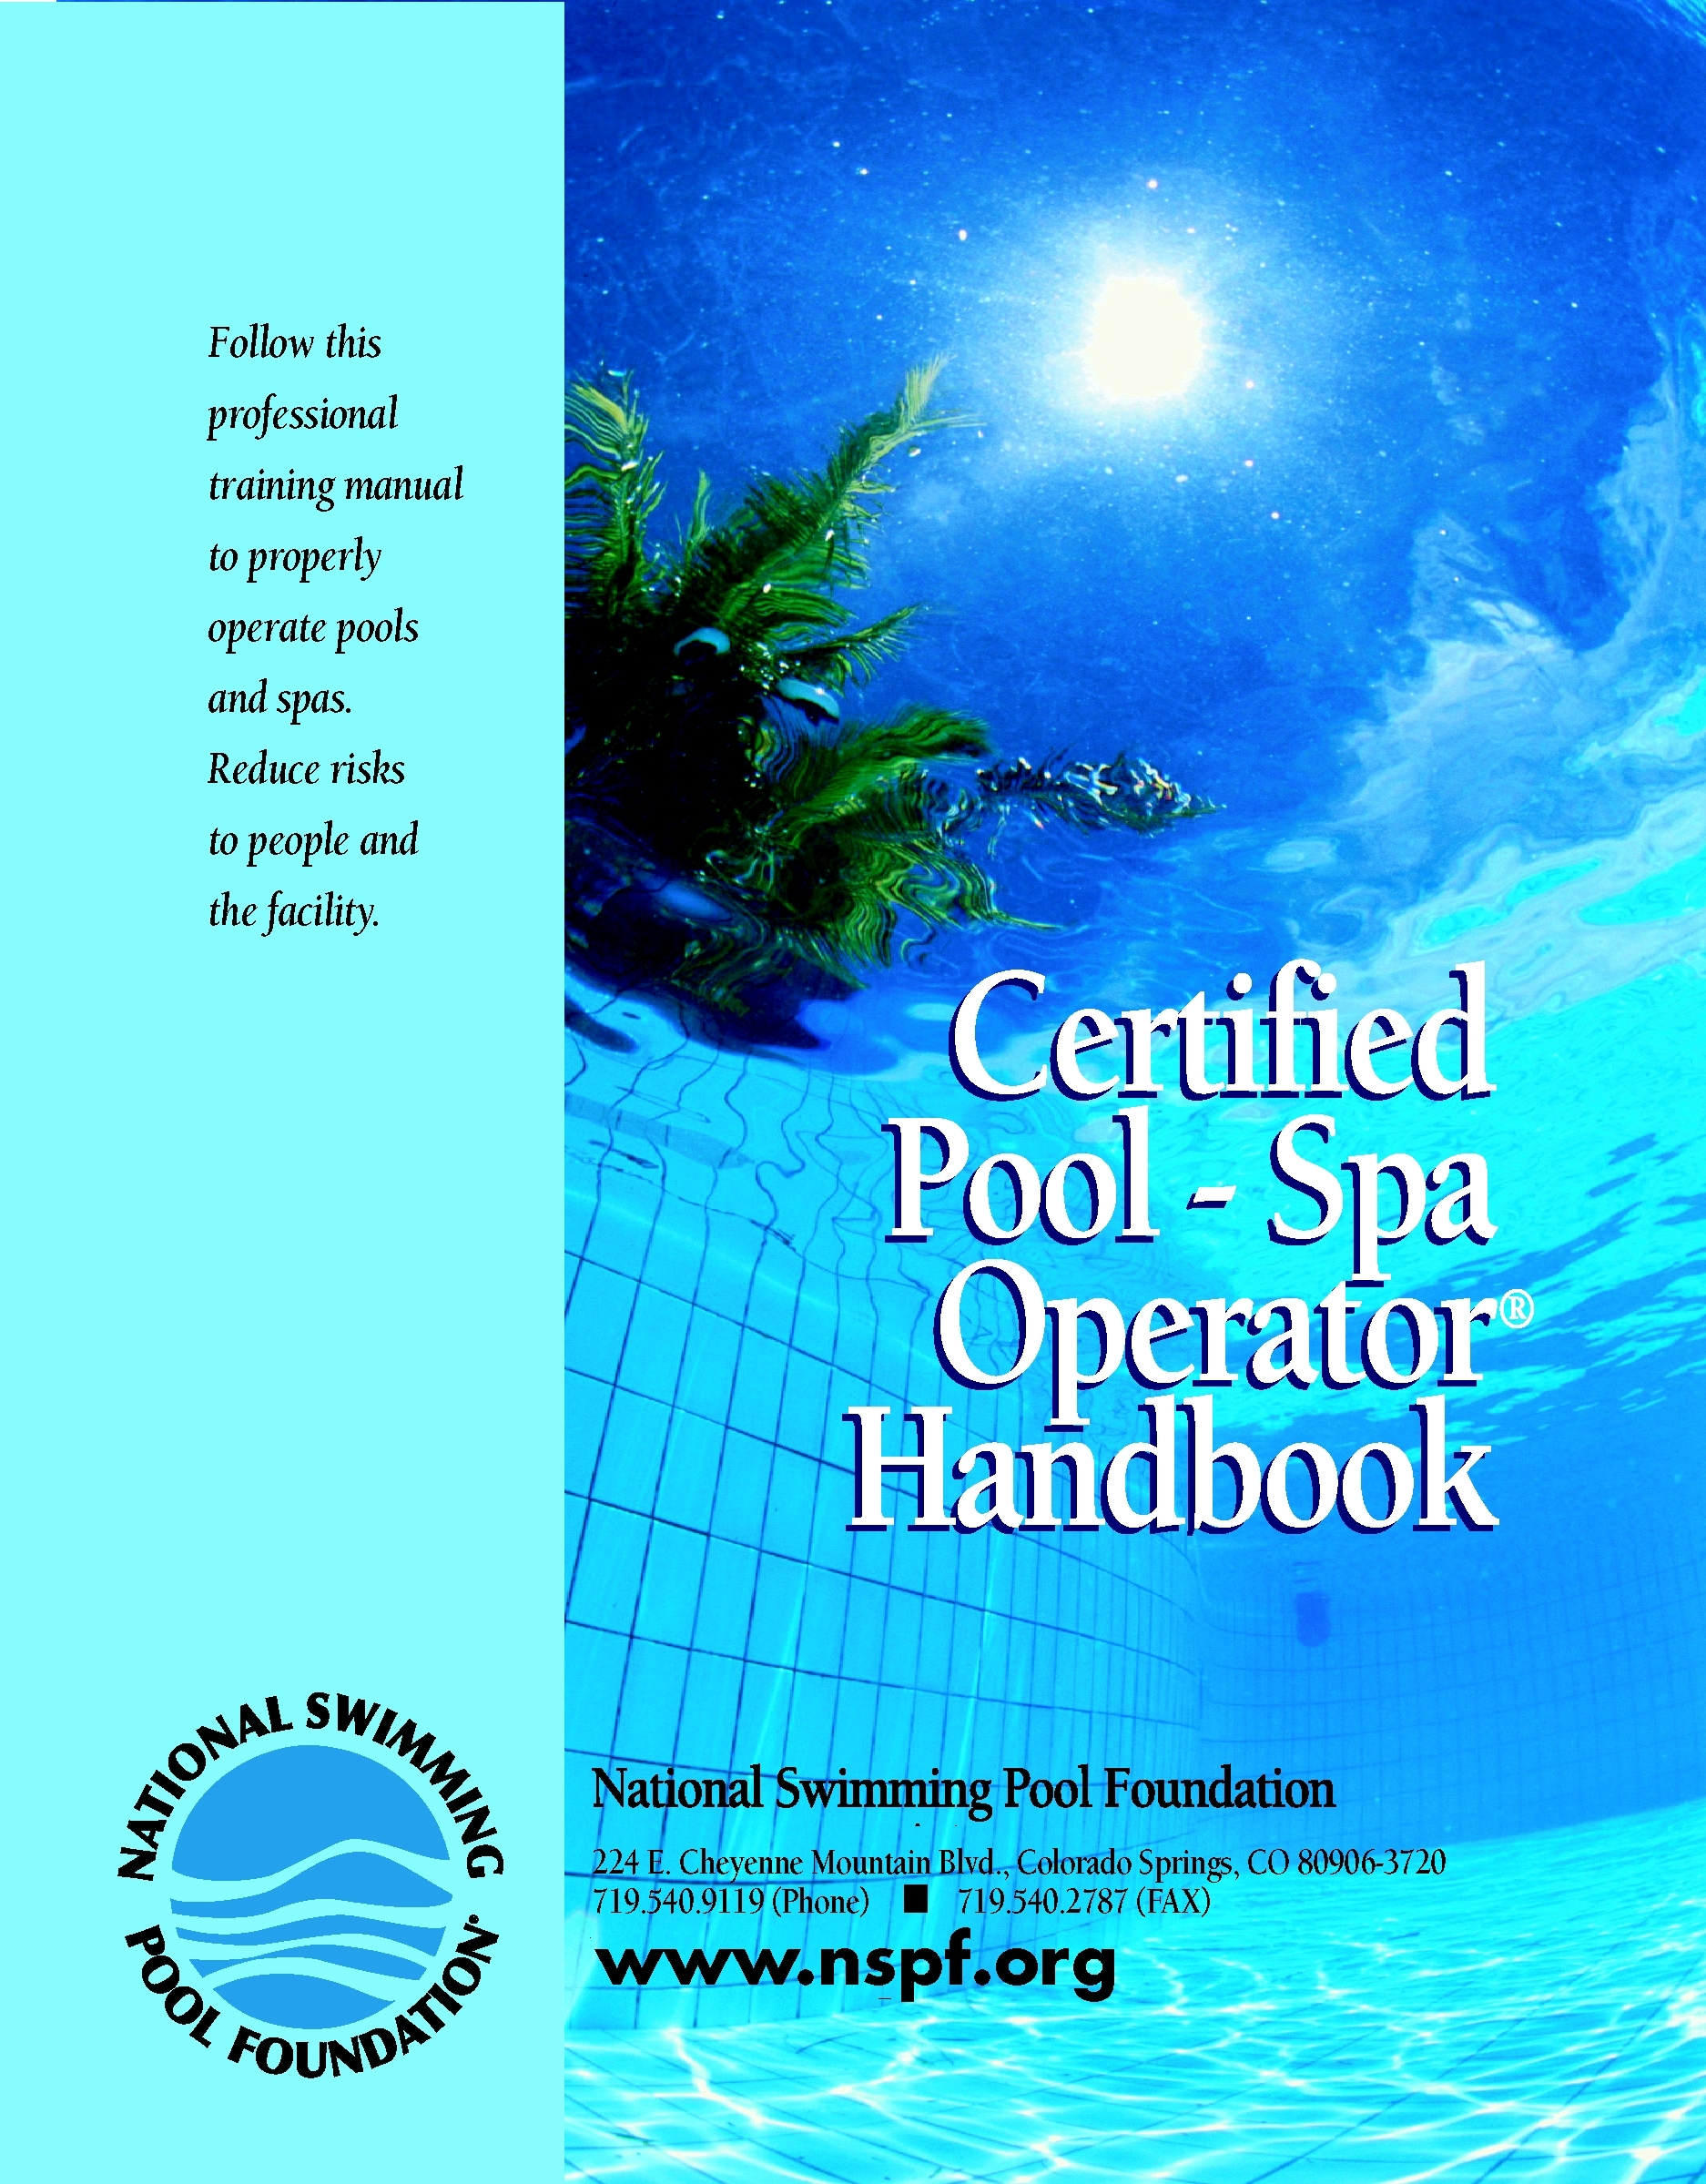 Certified Pool-Spa Operator HandbookFollow this professional training manual  to properly operate pools and spas. Reduce risks to people and the facility.